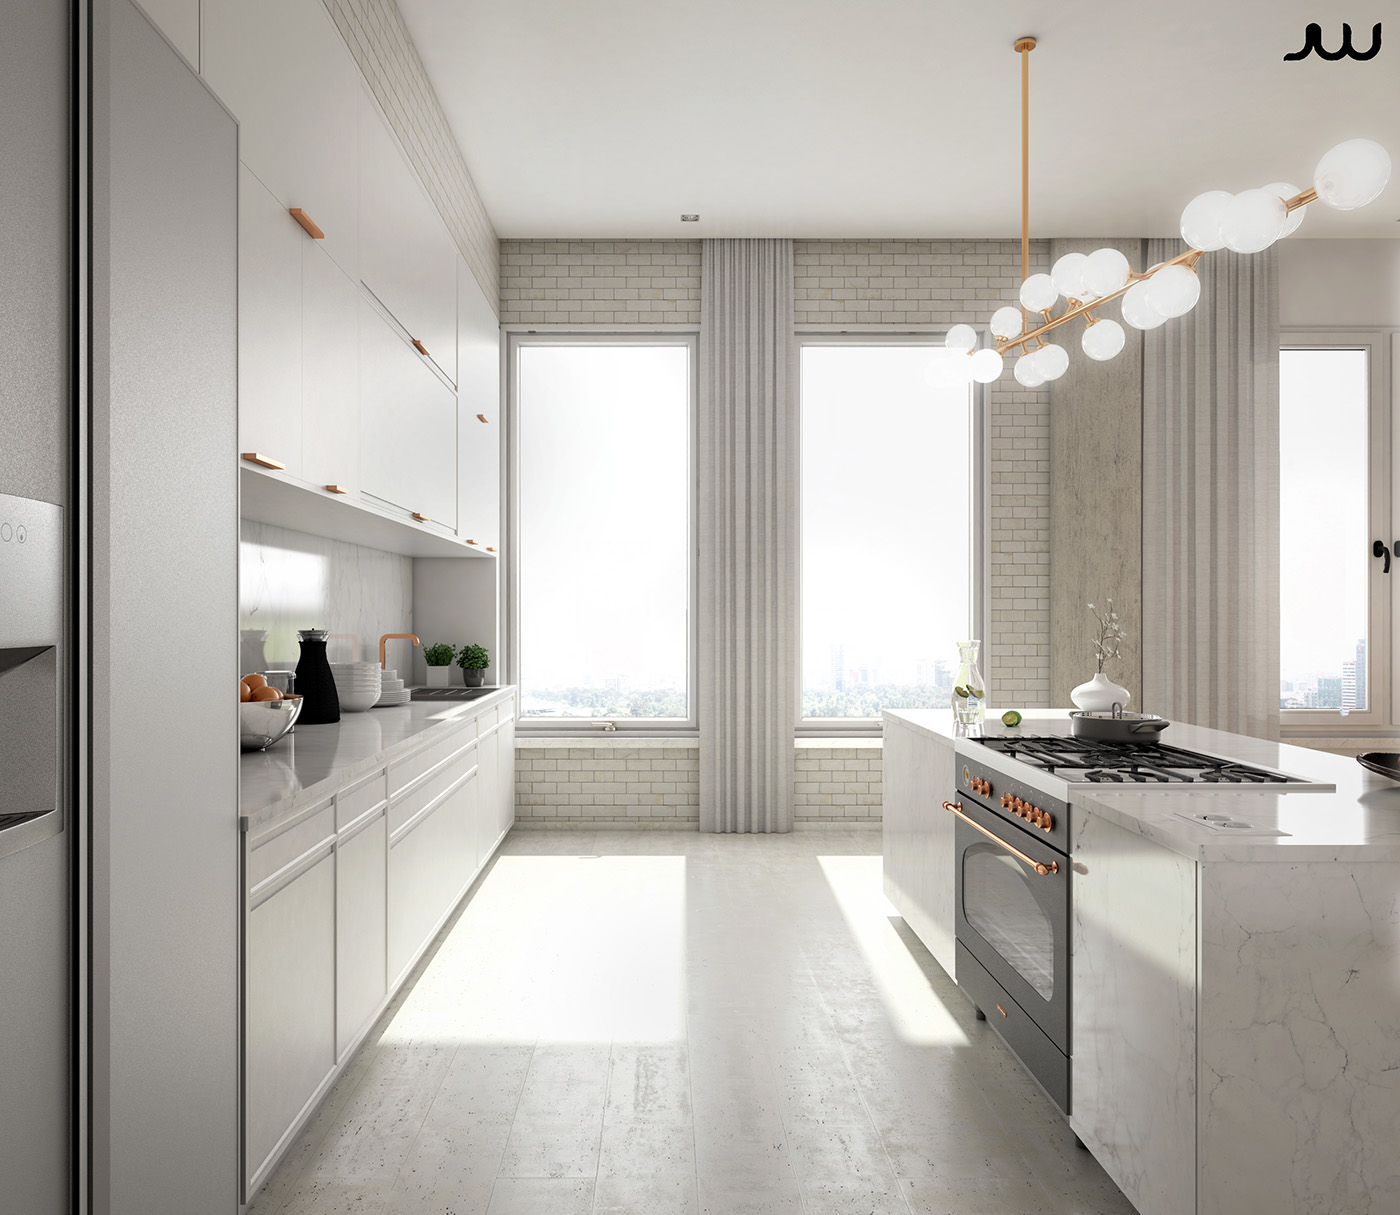 Nyc Appartment: New York Apartment (CGI) On Behance